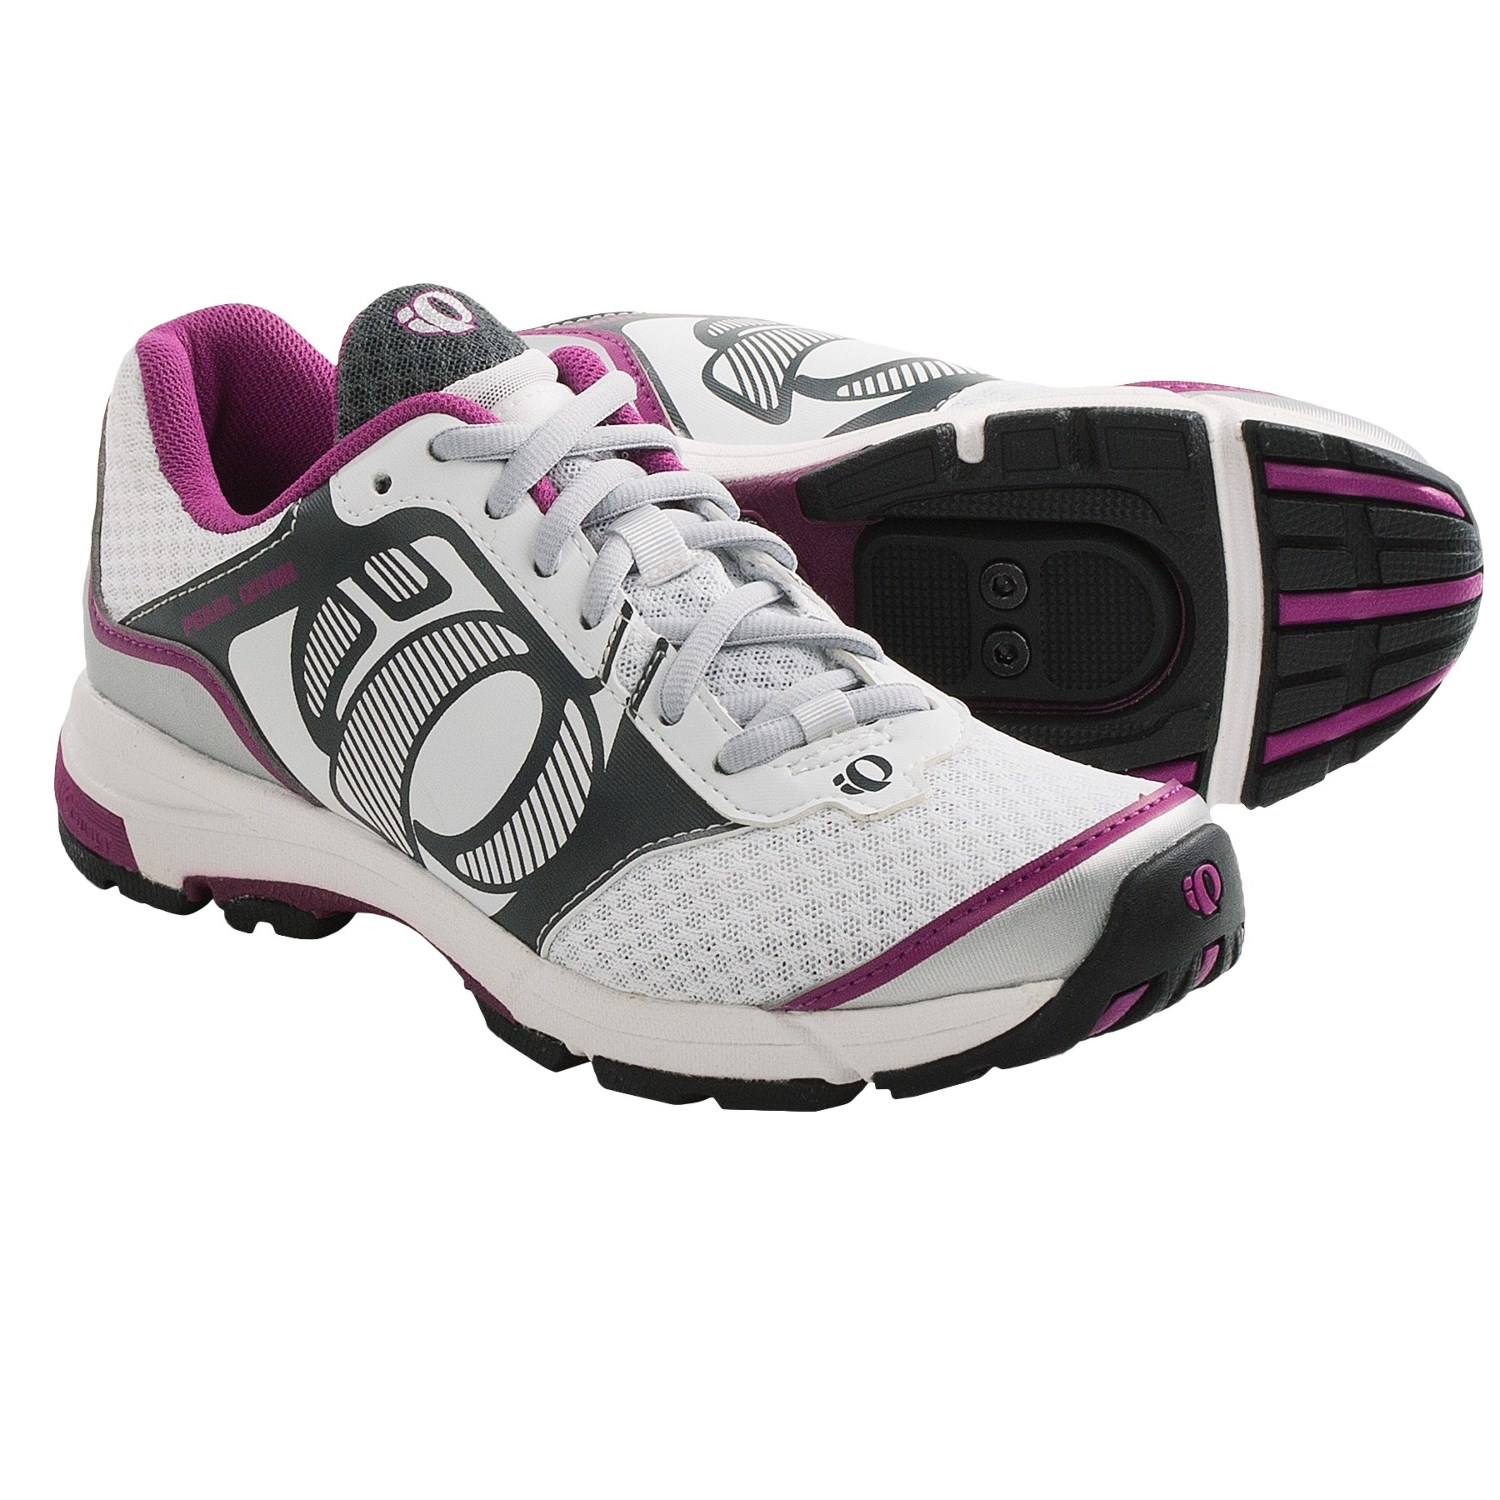 Pearl Izumi X-Road Fuel II Cycling Shoes - SPD (For Women) in White